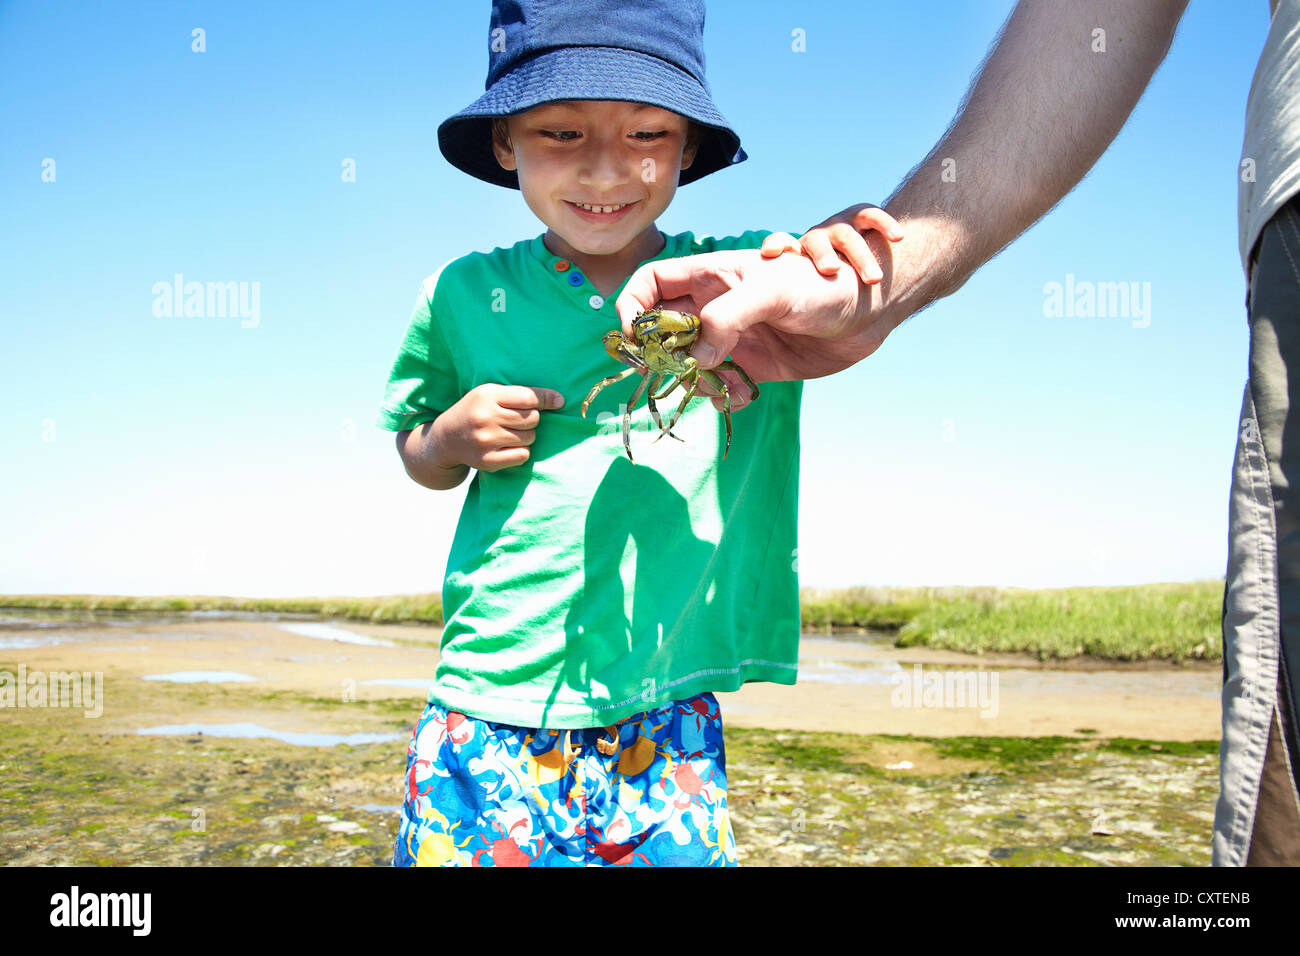 Boy examining crab in fathers hand - Stock Image